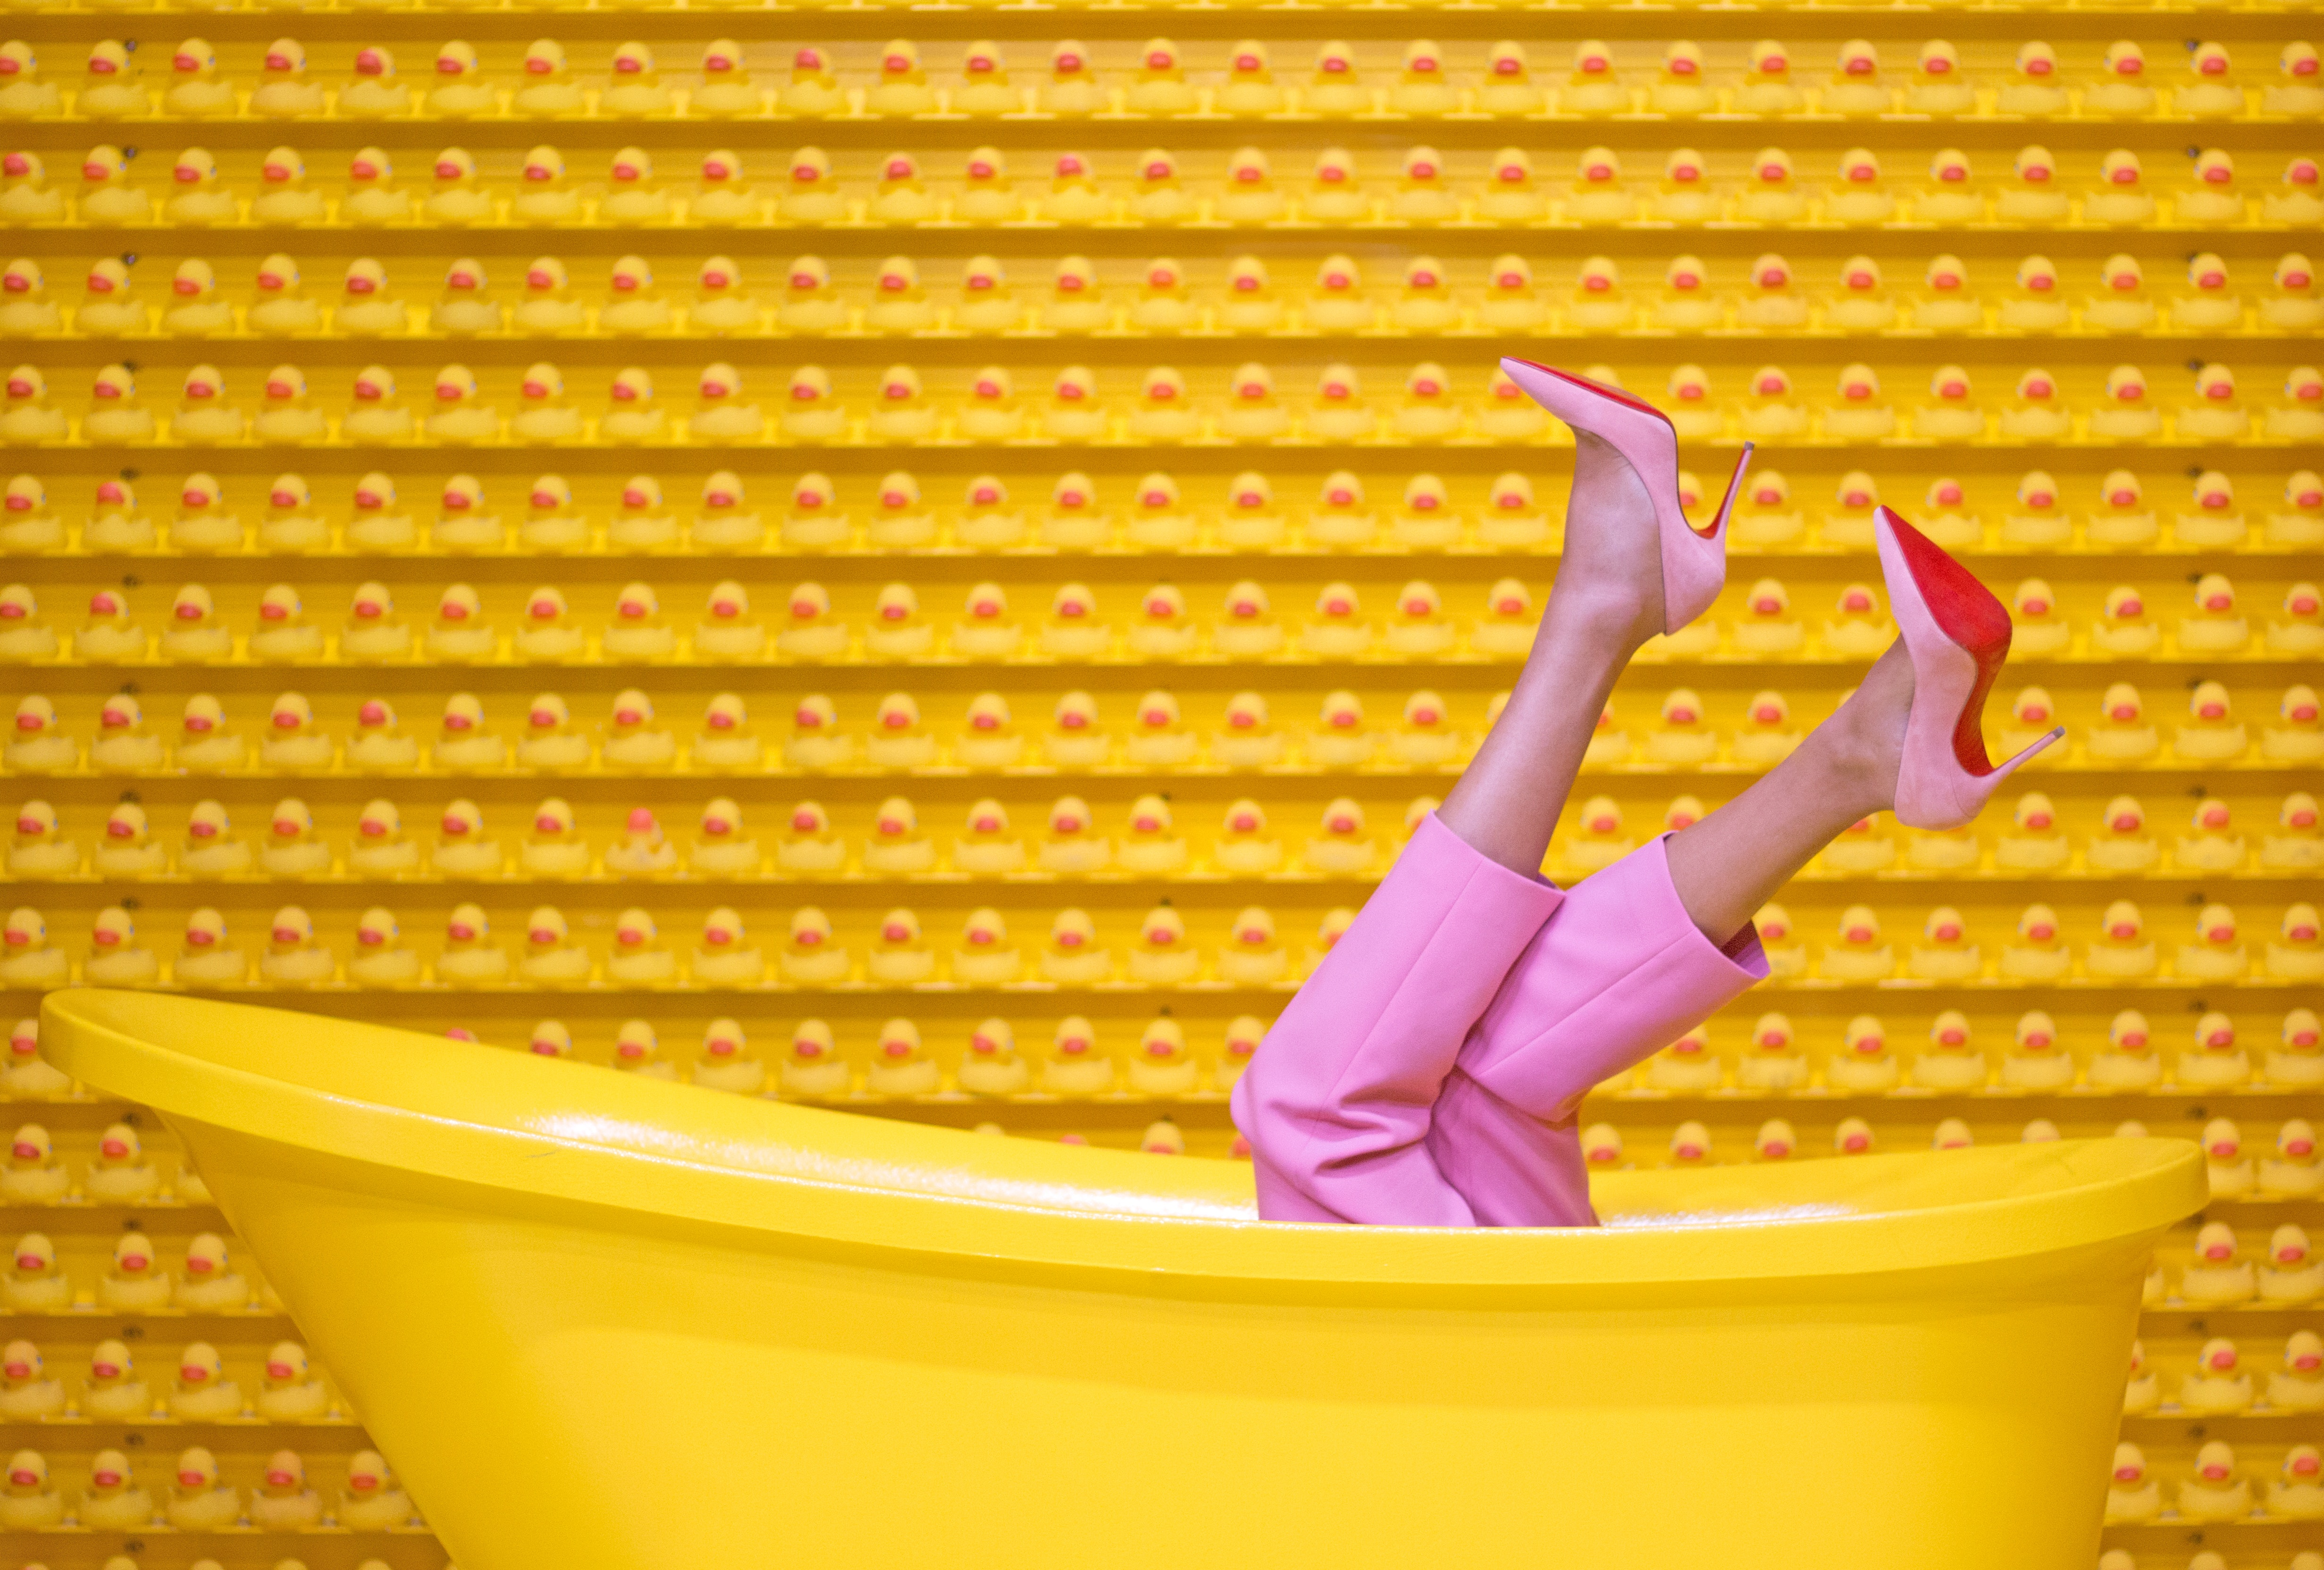 Women in pink clothes sit in a yellow bathtub in front of a yellow wall with red dots